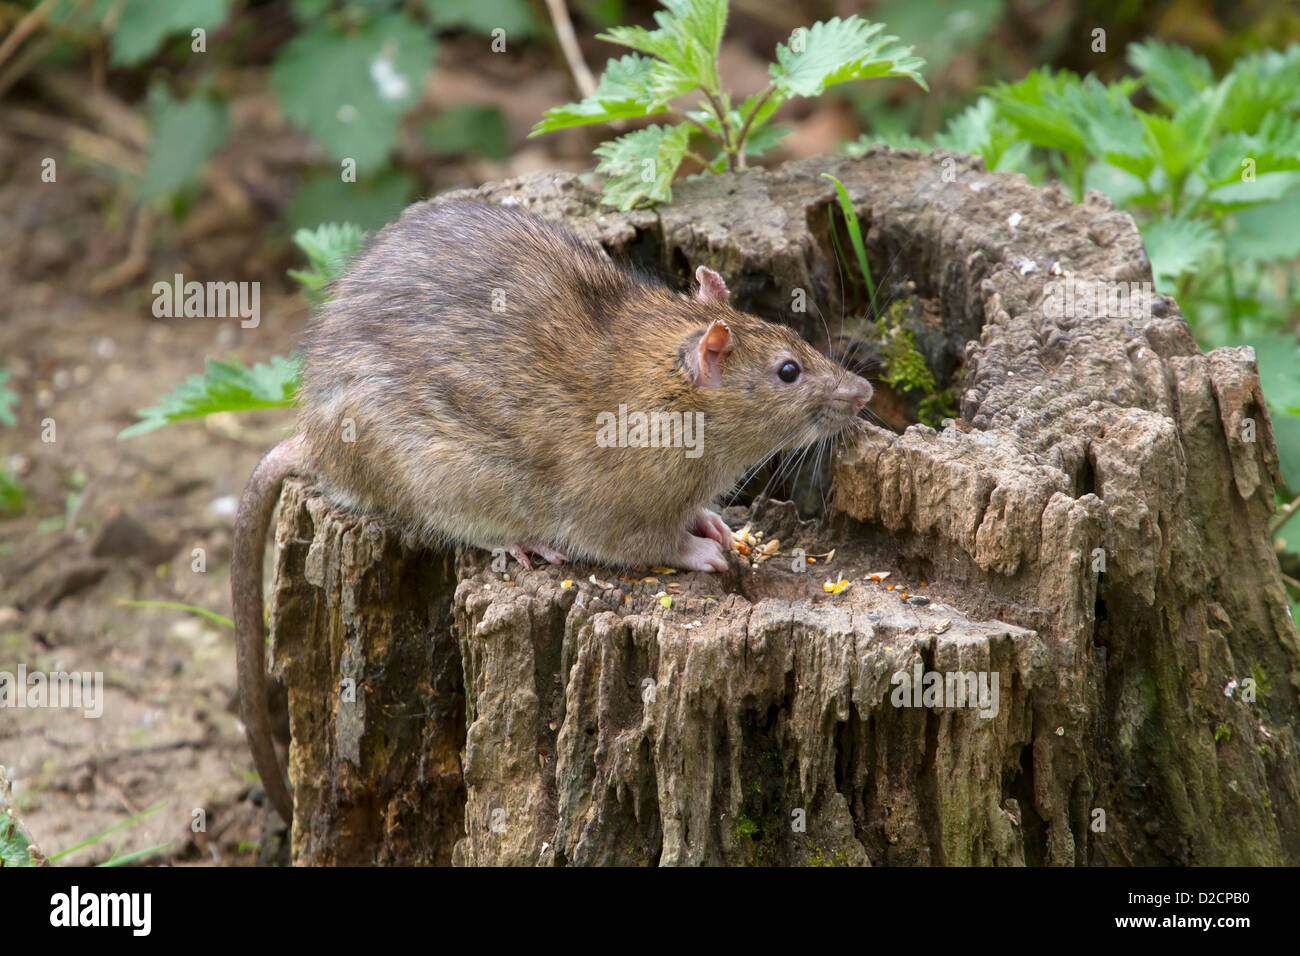 Brown Rat - rattus norvegicus - in Warwickshire, England, UK - Stock Image